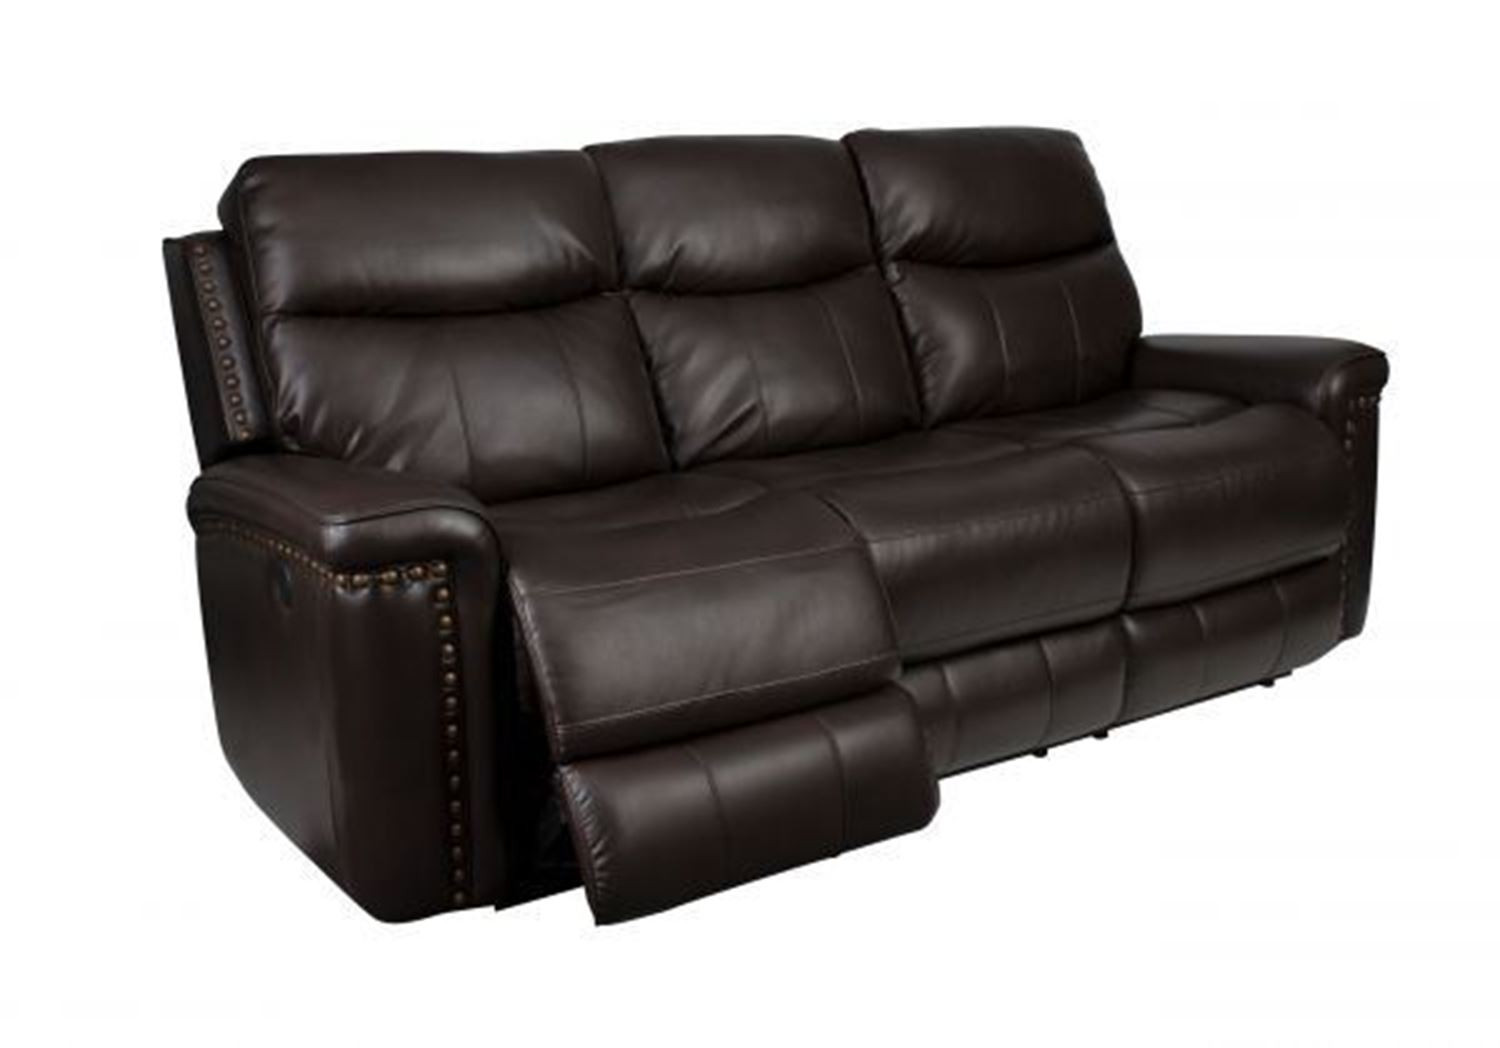 Best ideas about Triple Reclining Sofa . Save or Pin Ismaela Triple Power Reclining Sofa Now.